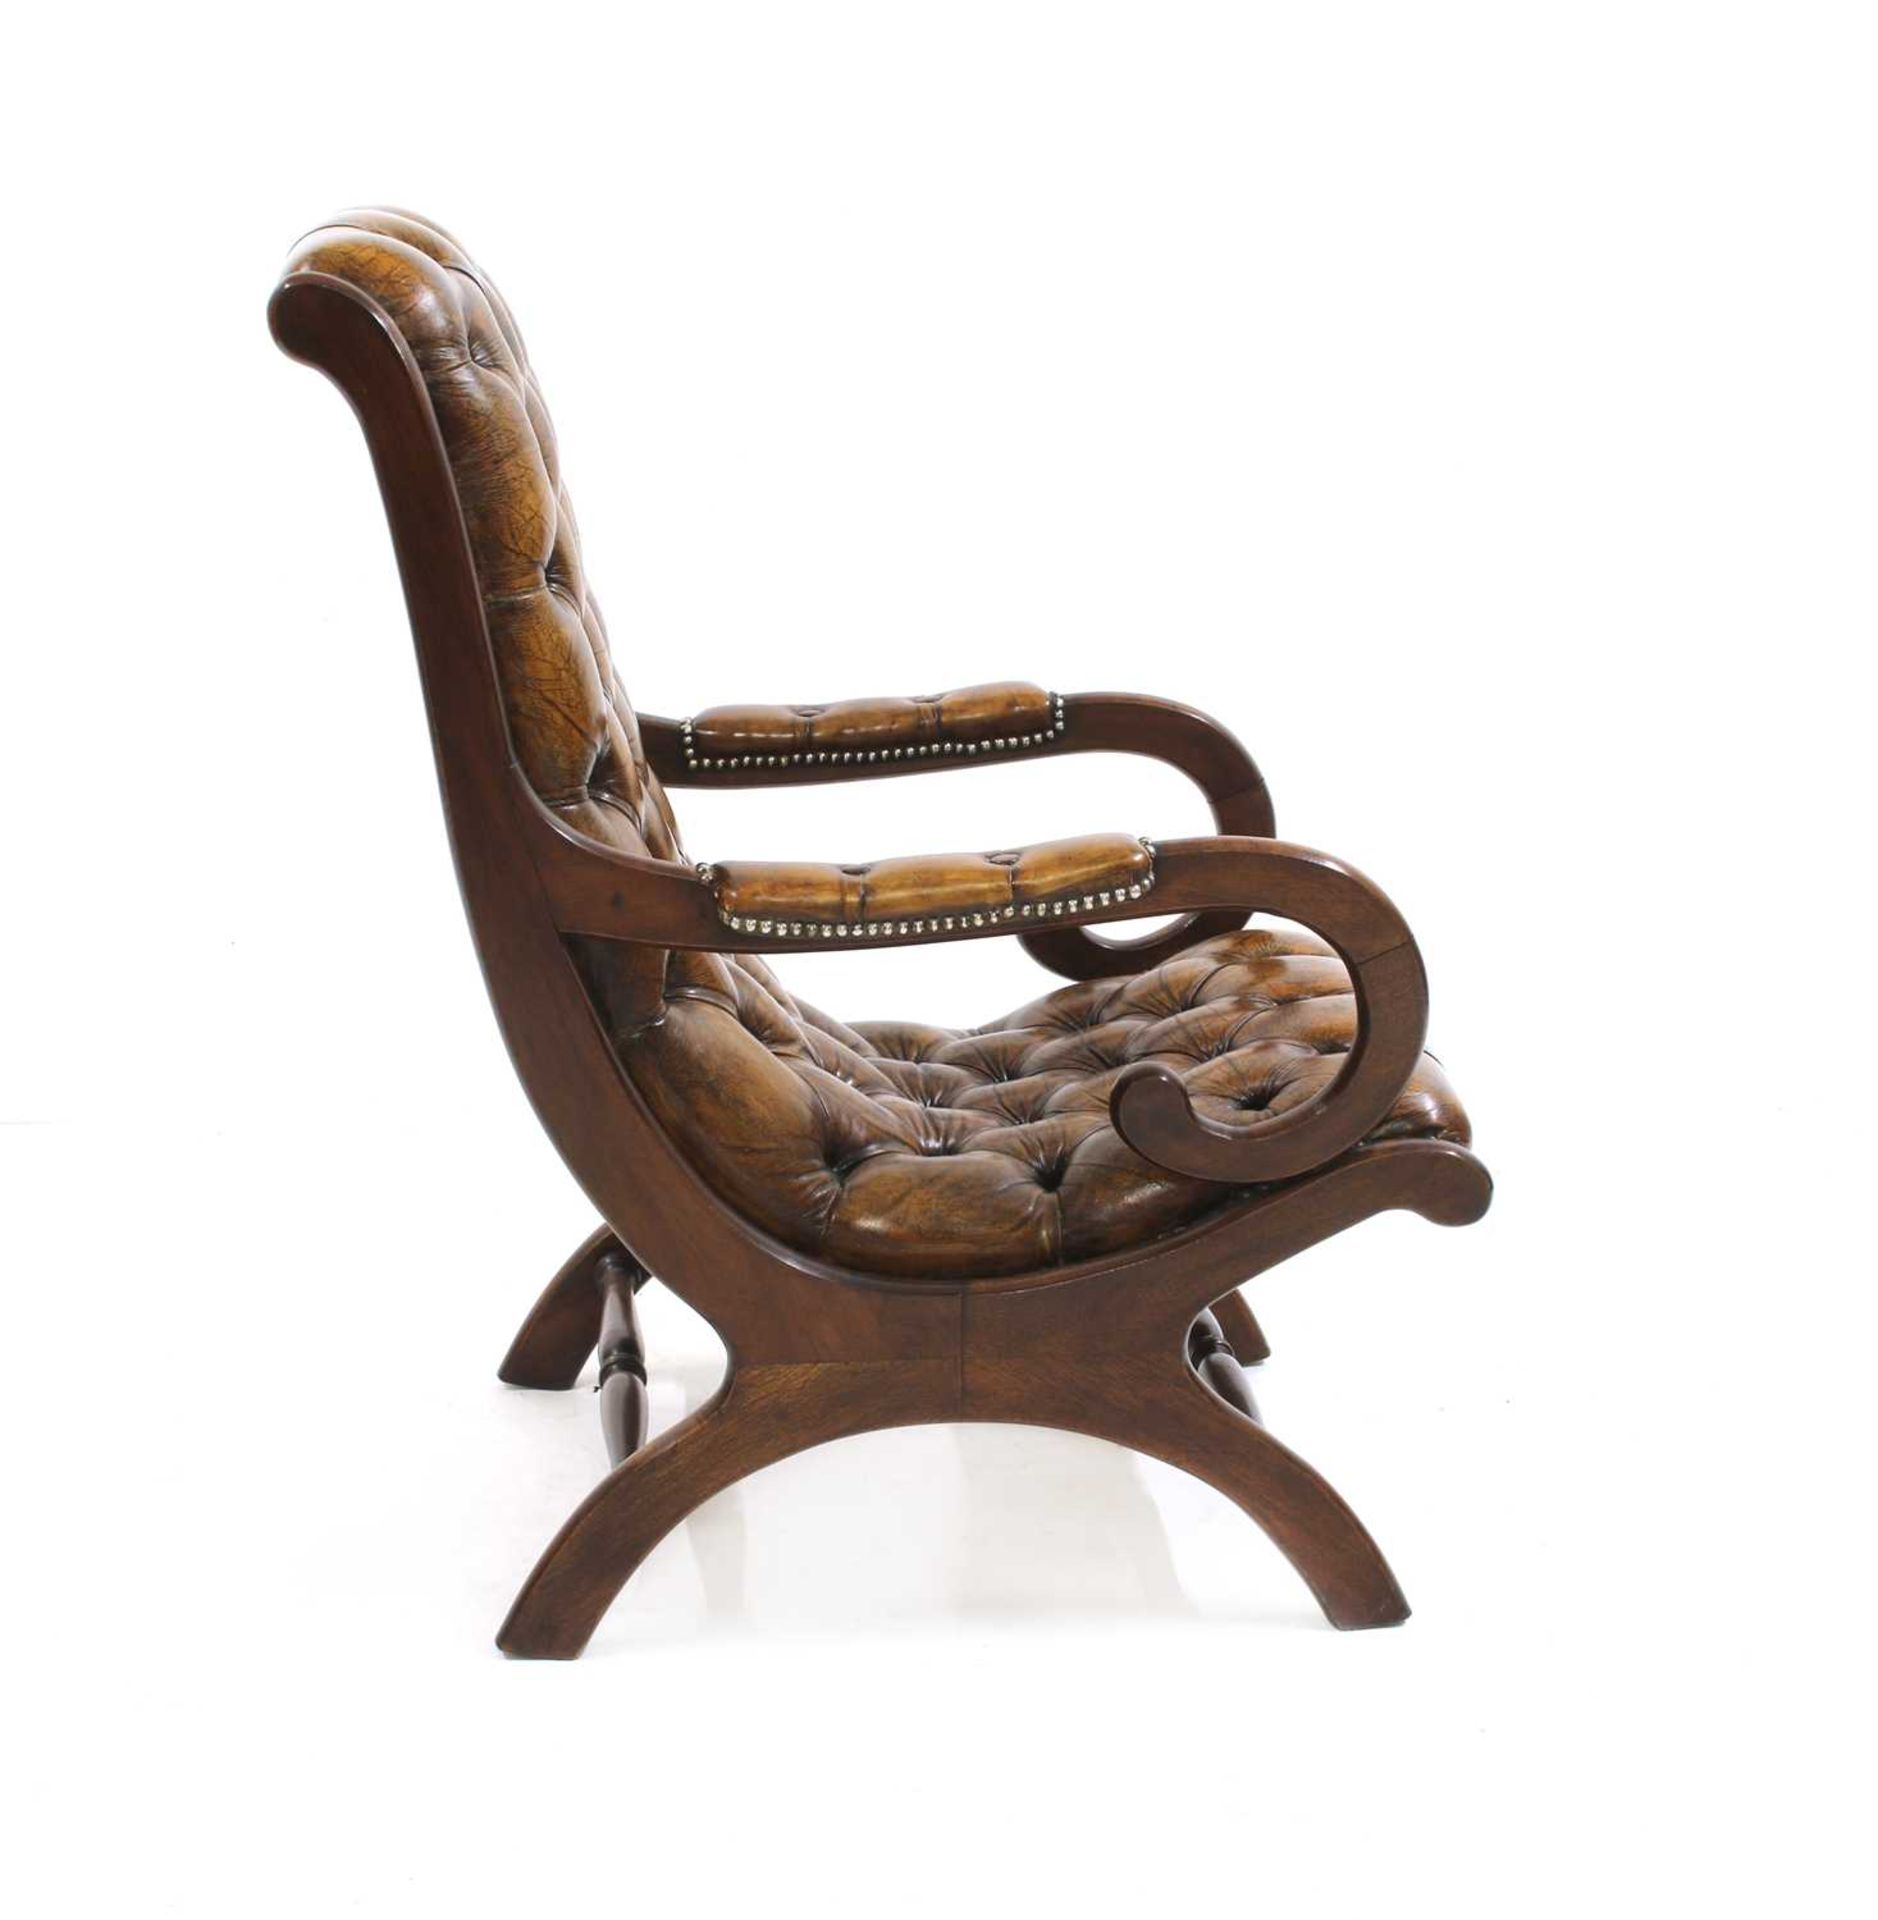 A William IV-style mahogany armchair, - Image 4 of 5